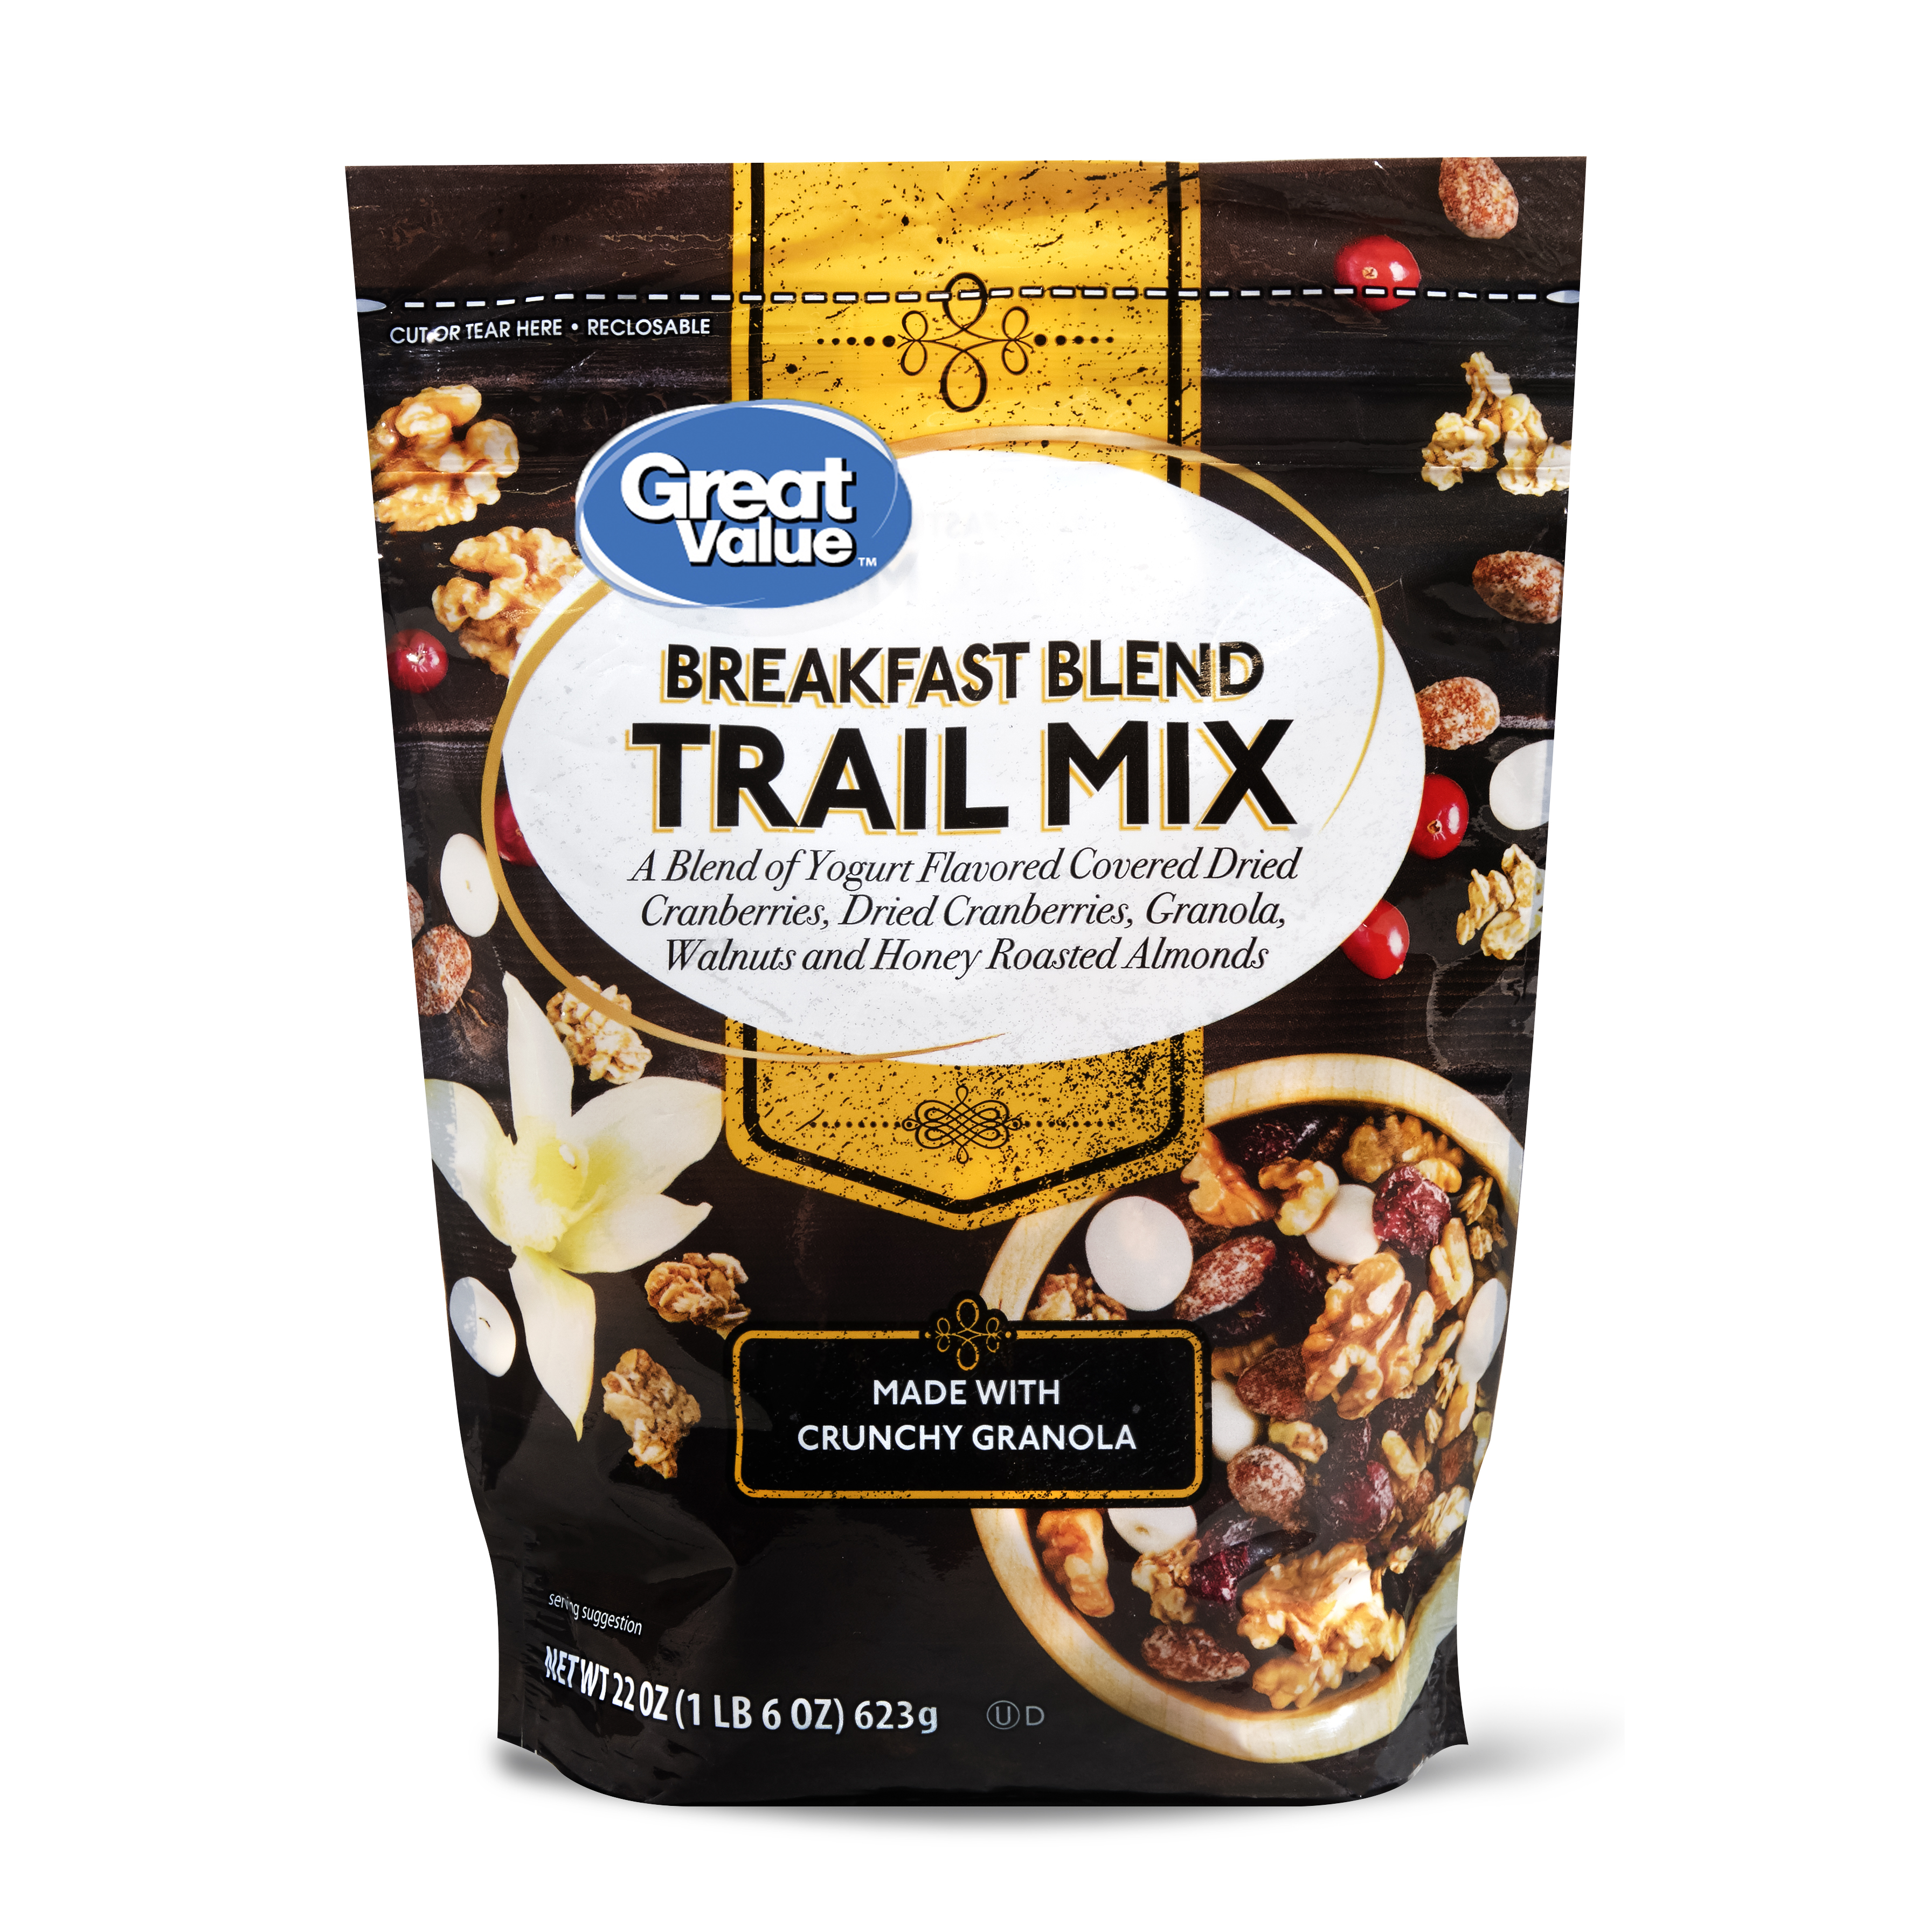 Great Value Trail Mix, Breakfast Blend, 22 Oz